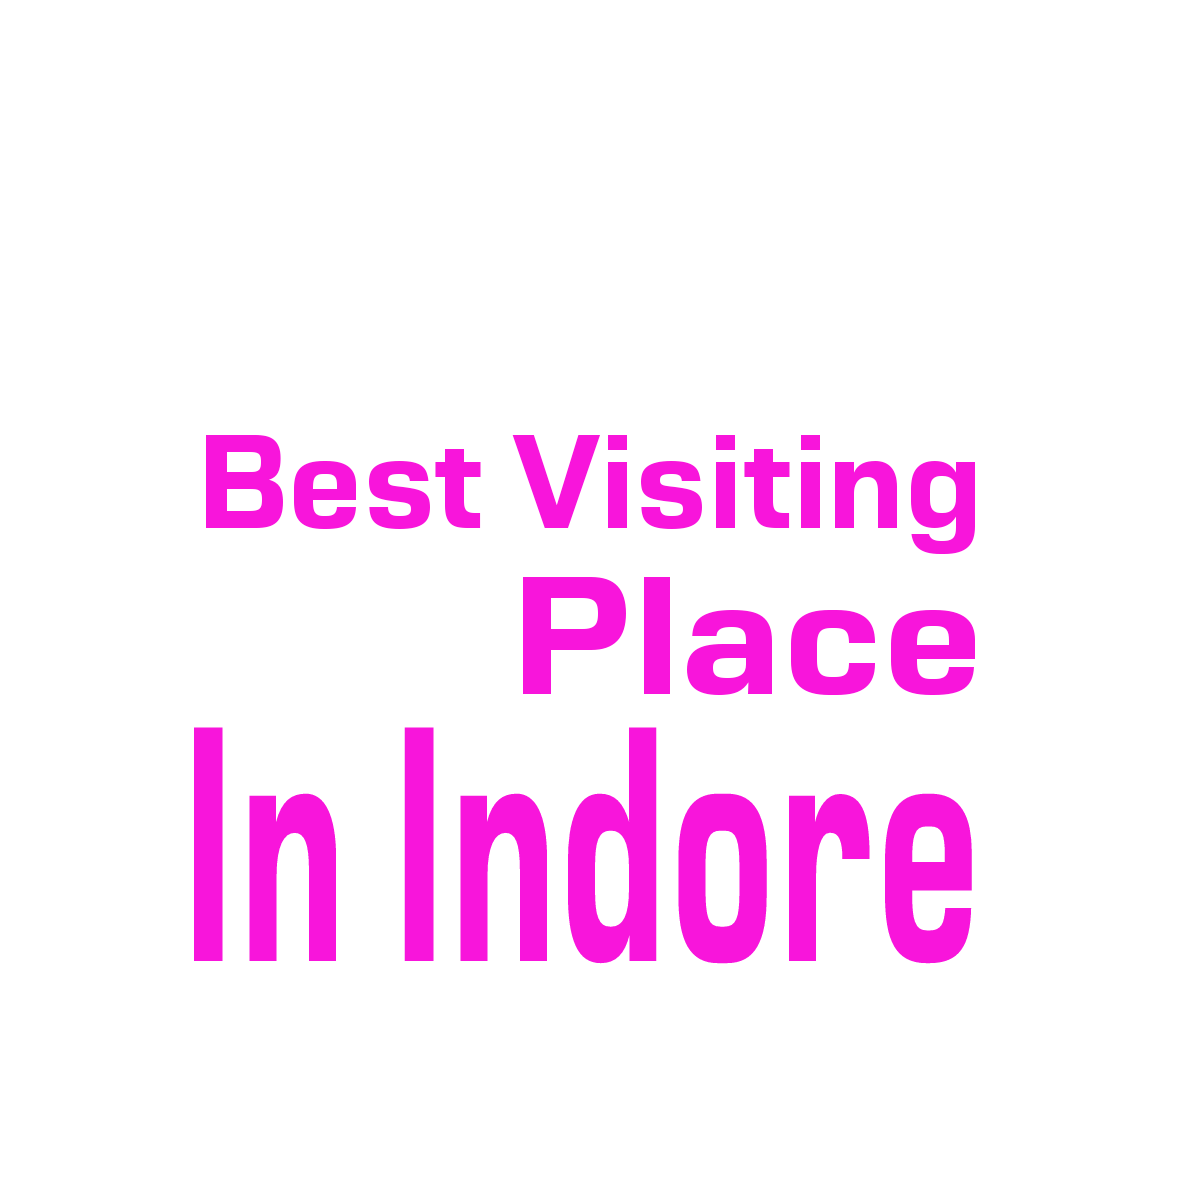 best visiting place in indore